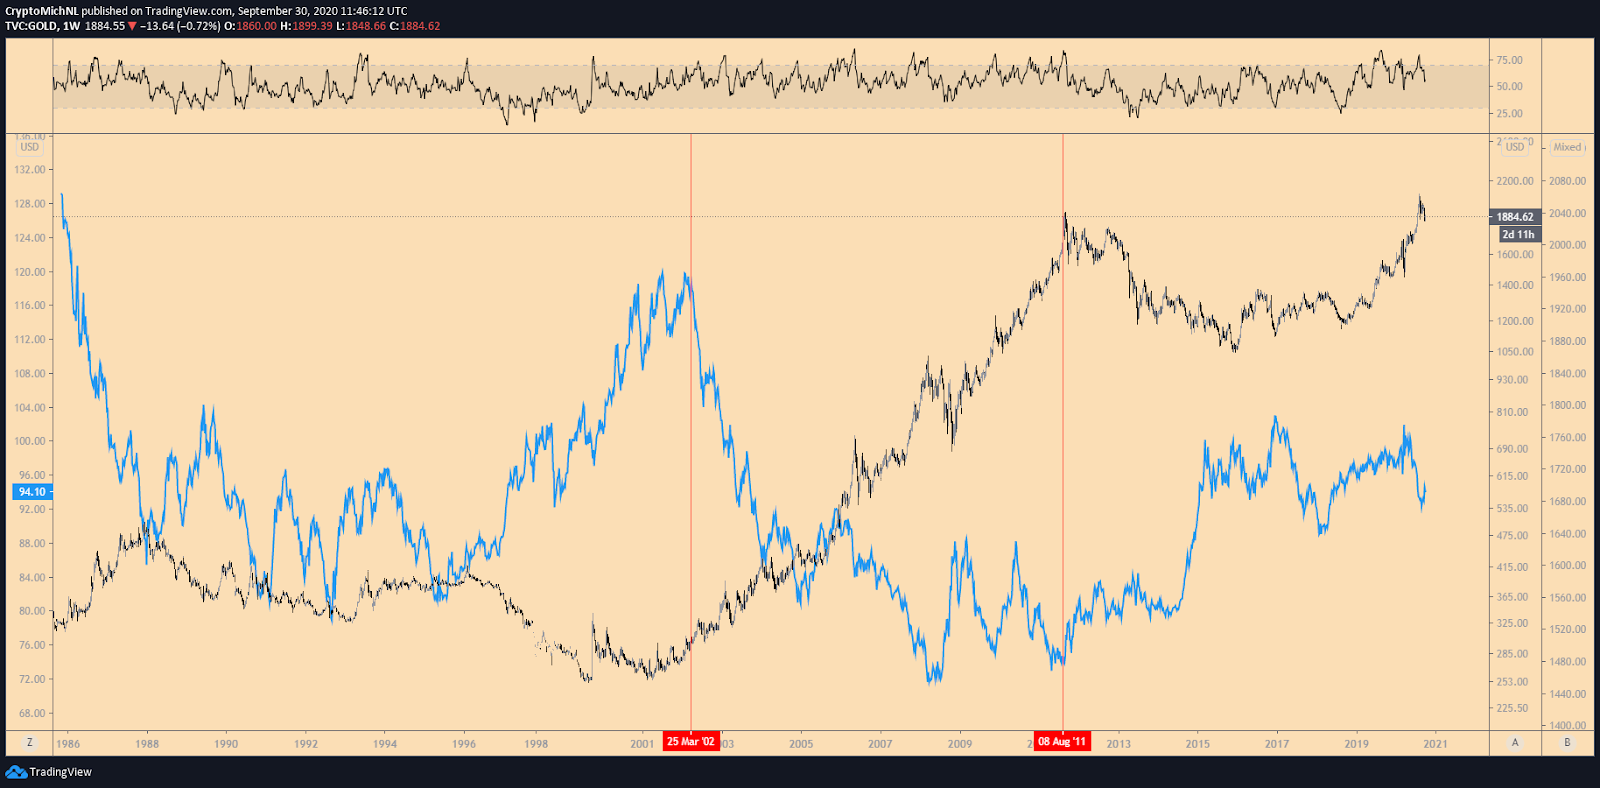 DXY Index vs. Gold 1-week chart. Source: TradingView